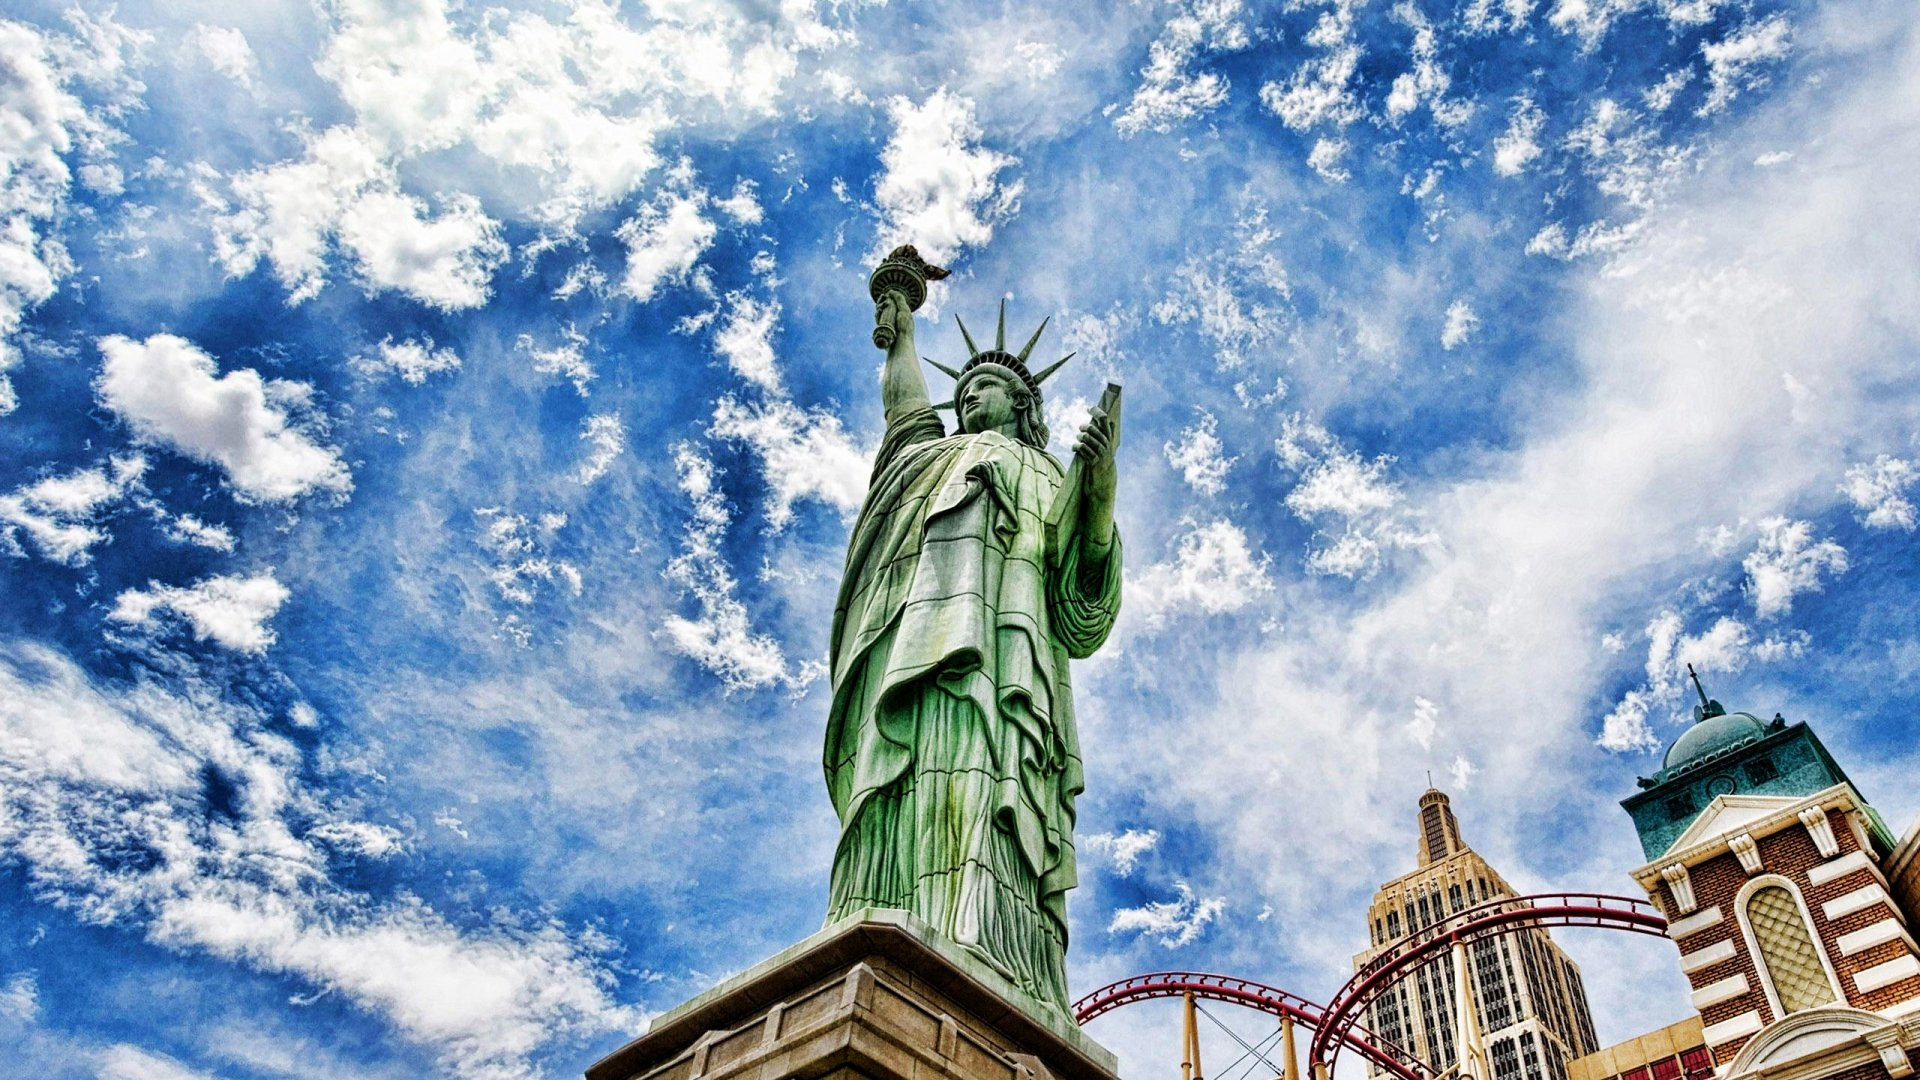 Statue of Liberty Wallpapers   Travel HD Wallpapers 1920x1080